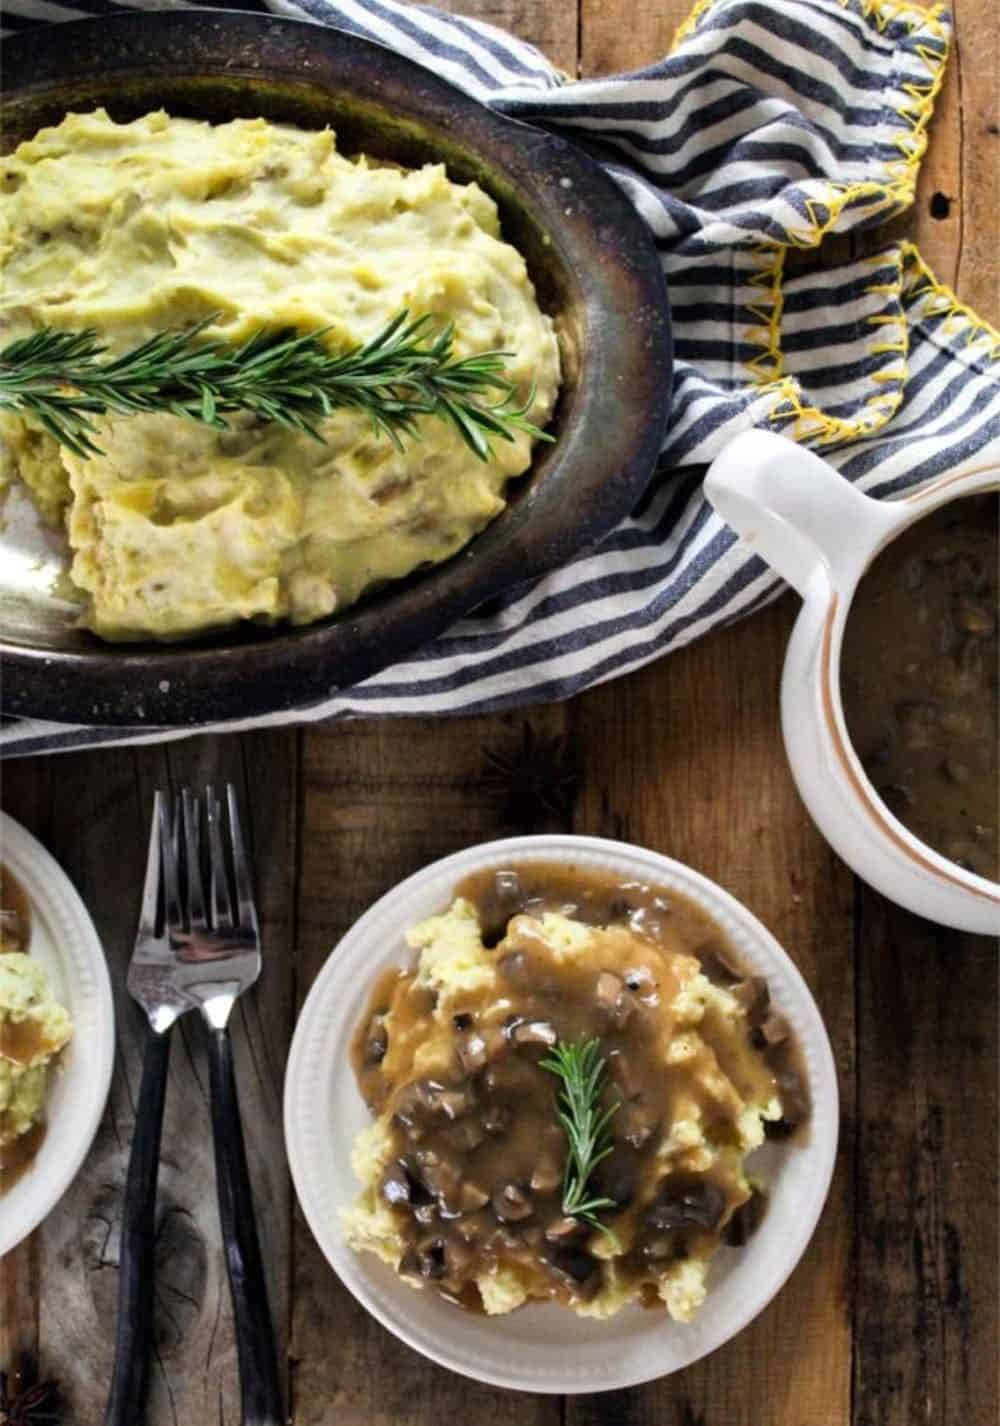 Vegan mashed potatoes & gravy